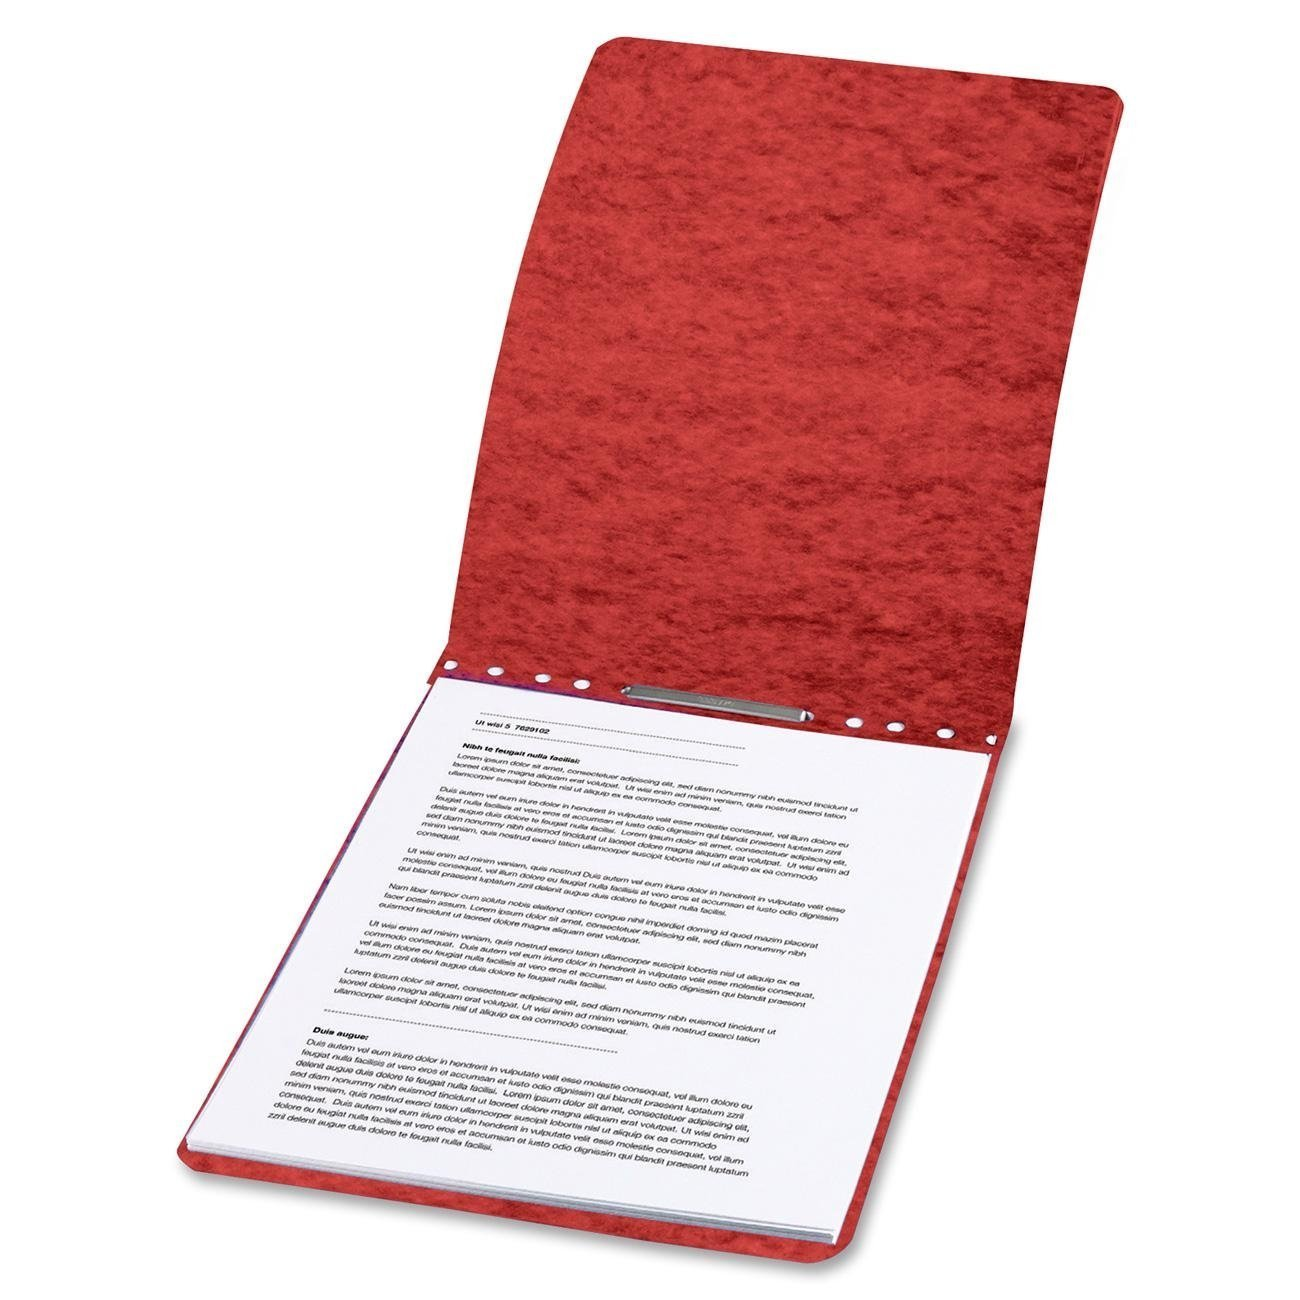 10 Top Bound Legal Size Binder Report Covers for Foolscap and Legal Size Paper